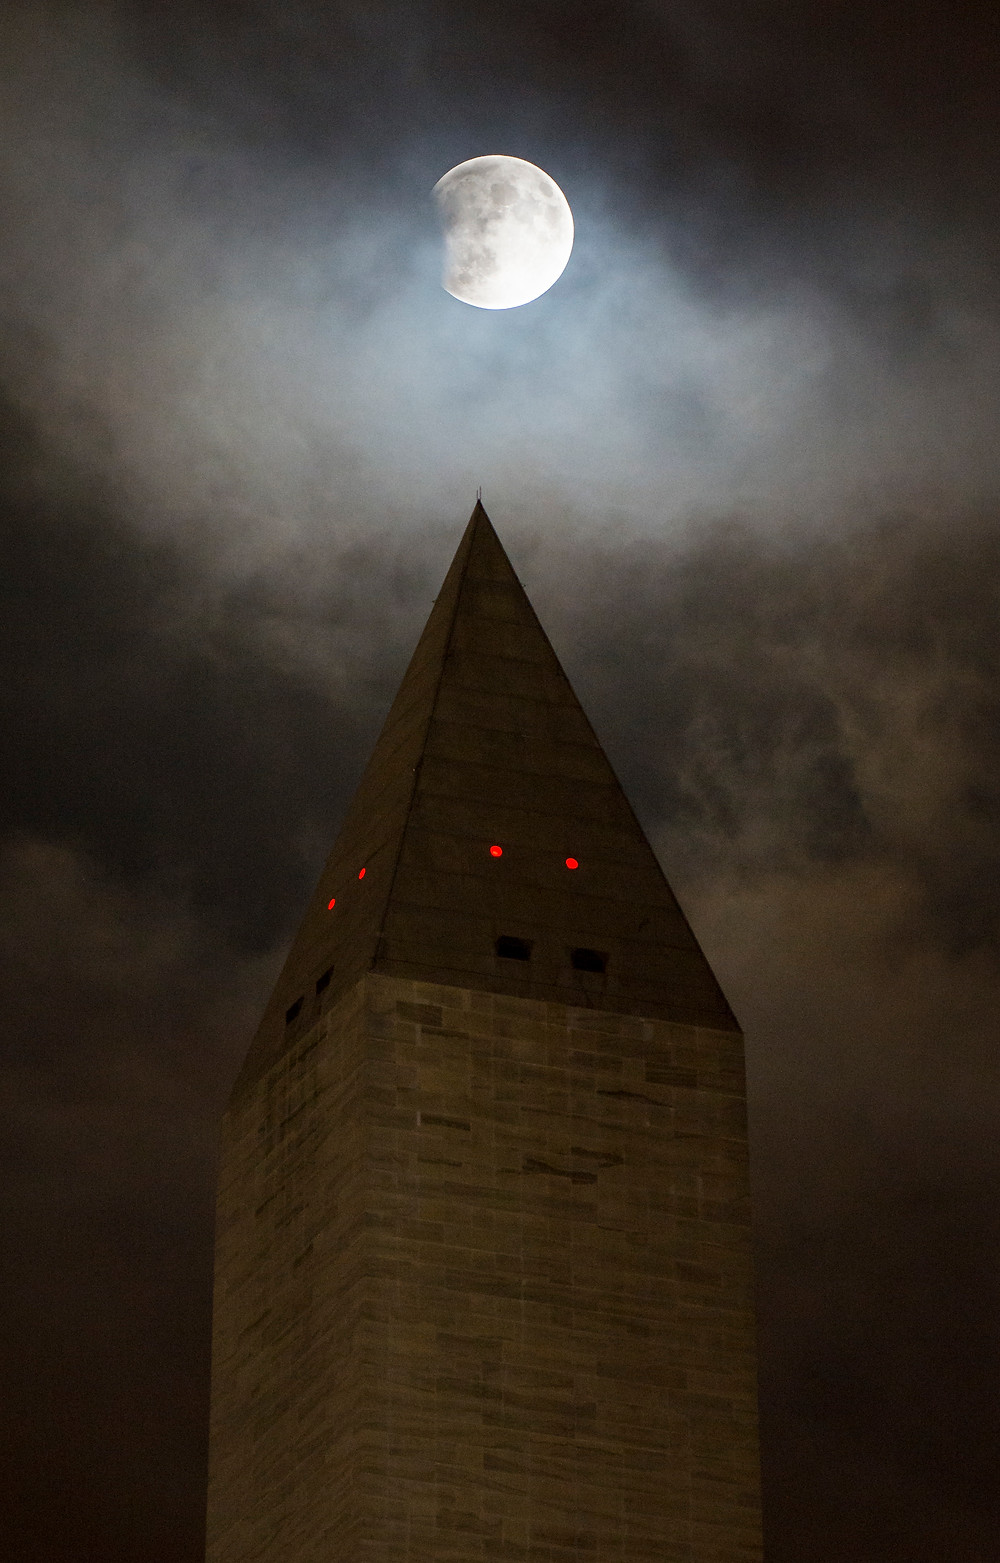 A perigee full moon, or supermoon, is seen behind the Washington Monument during a total lunar eclipse on Sunday, September 27, 2015, in Washington, DC.